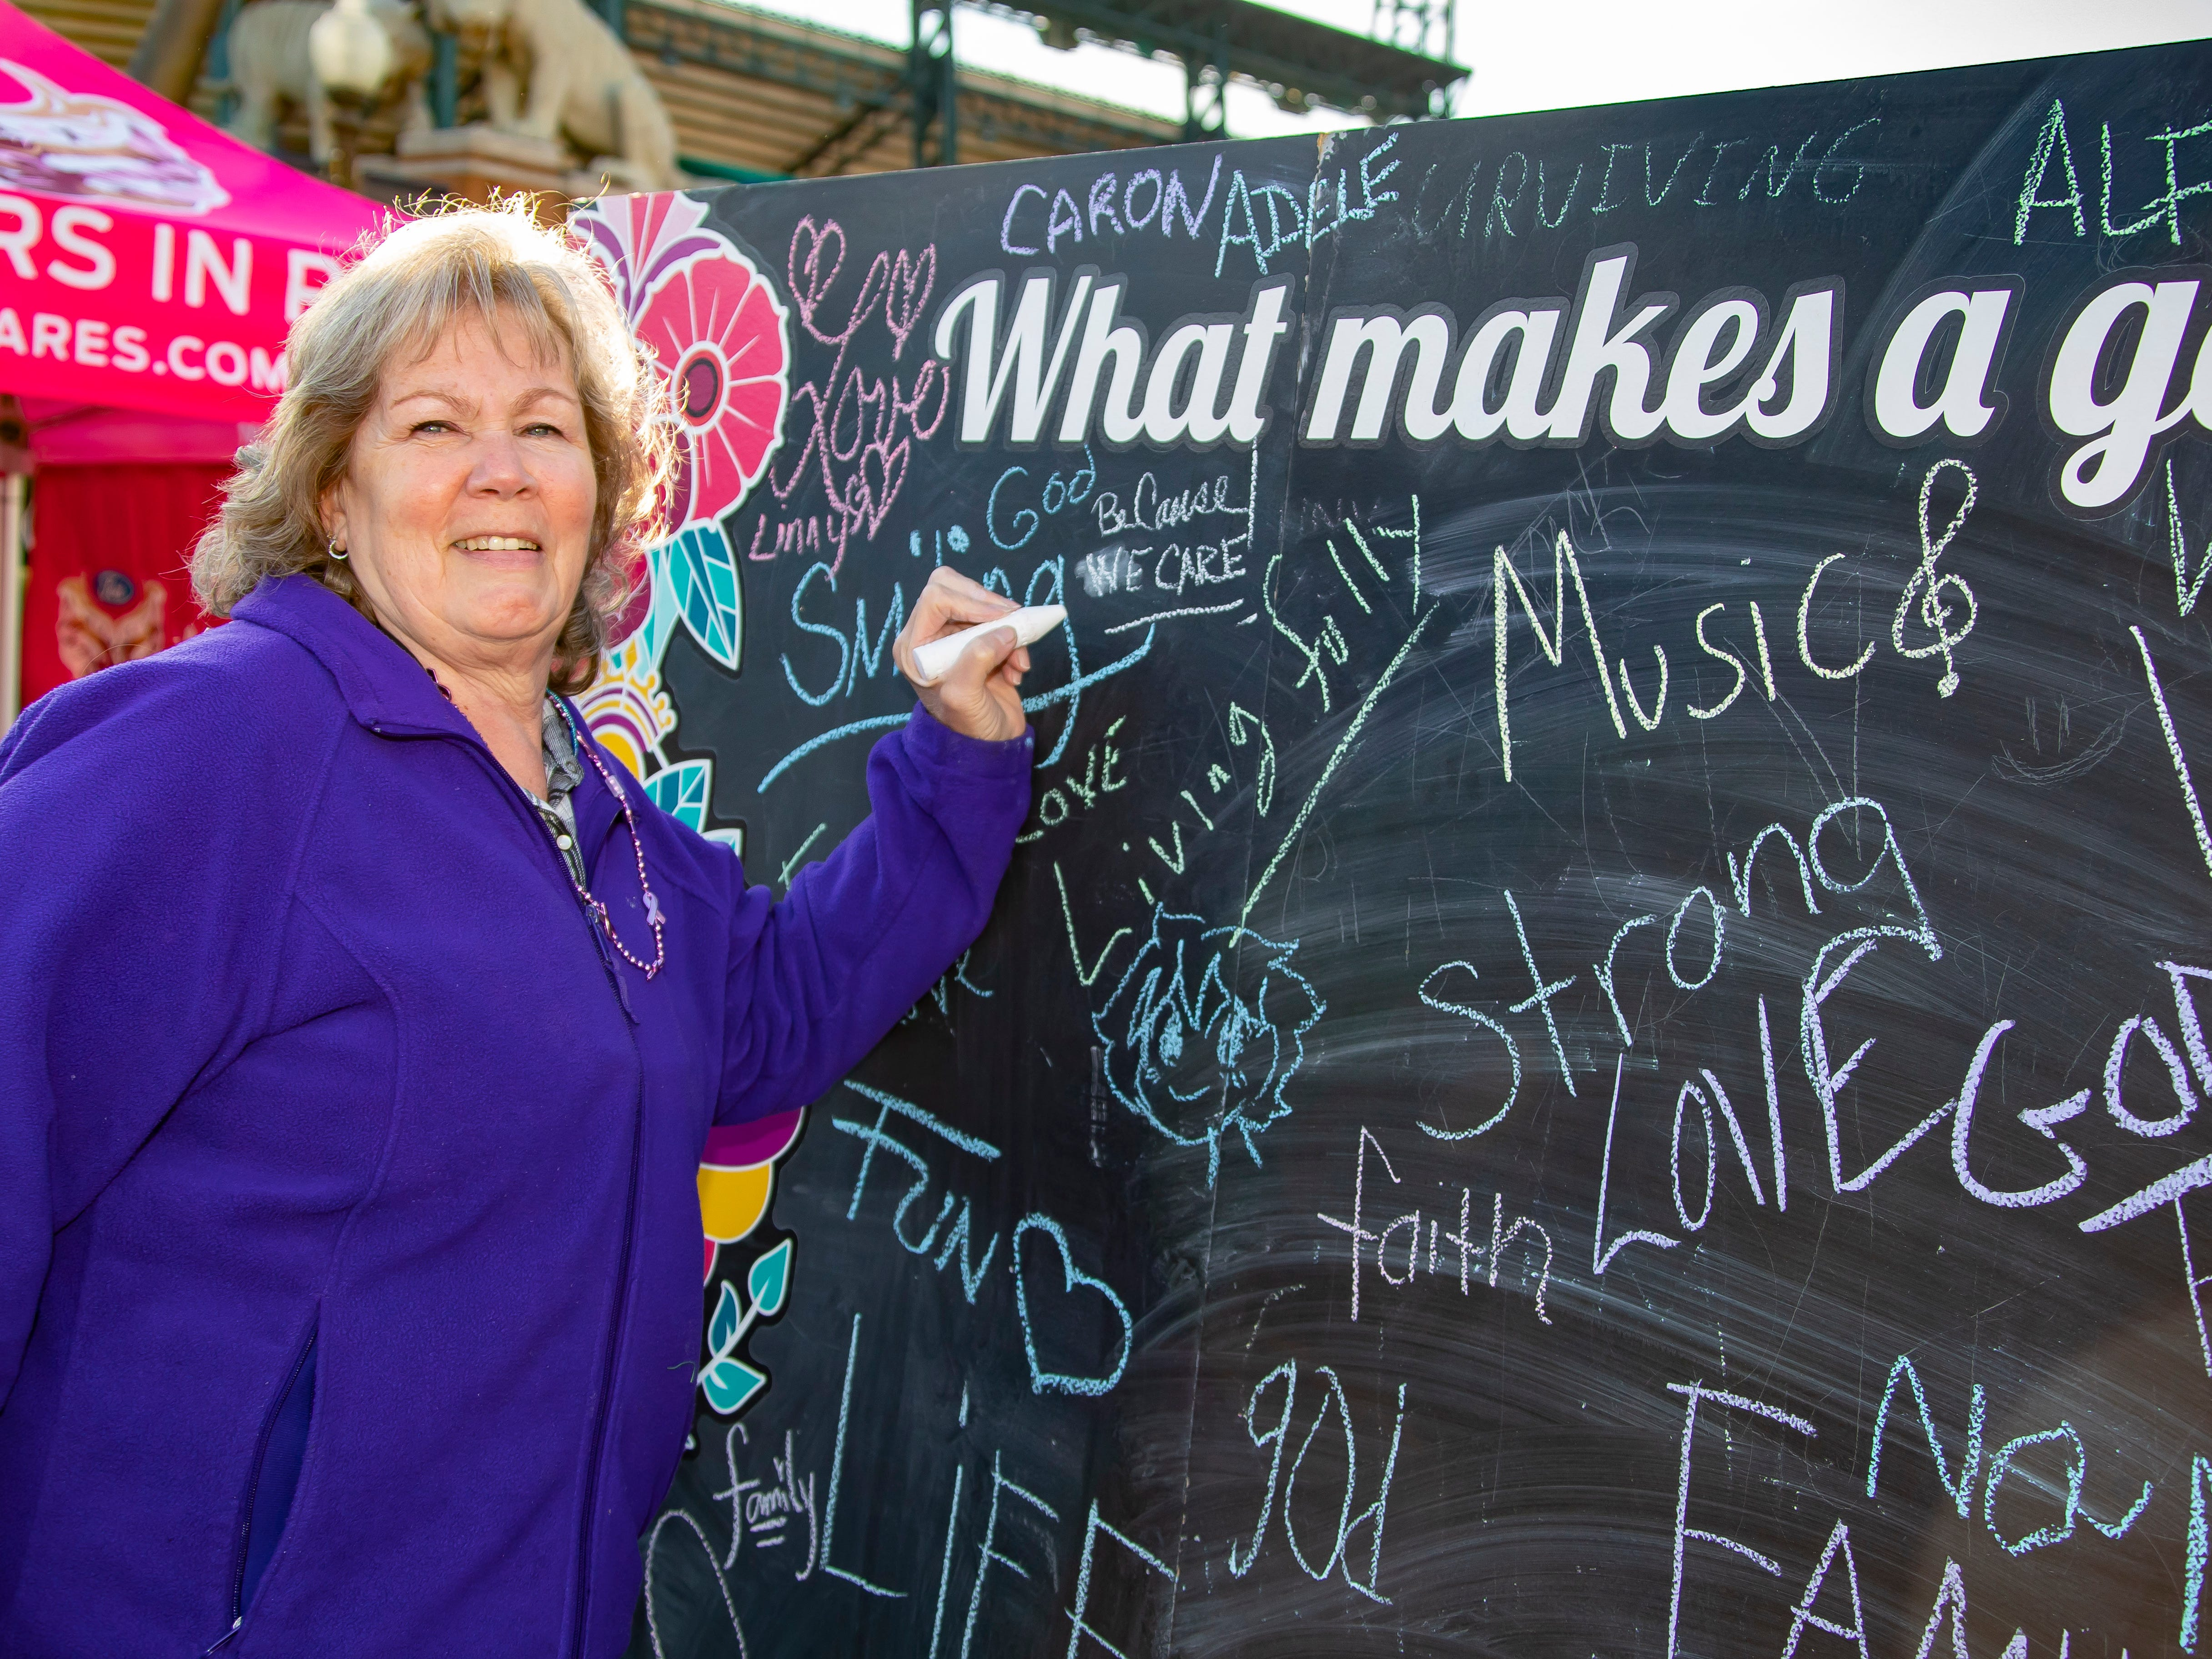 Diane McDonald signs the memory chalk board during the Susan G. Komen Race for the Cure at Comerica Park in Detroit Michigan. (Photo by Dave Reginek-Special to Detroit News)